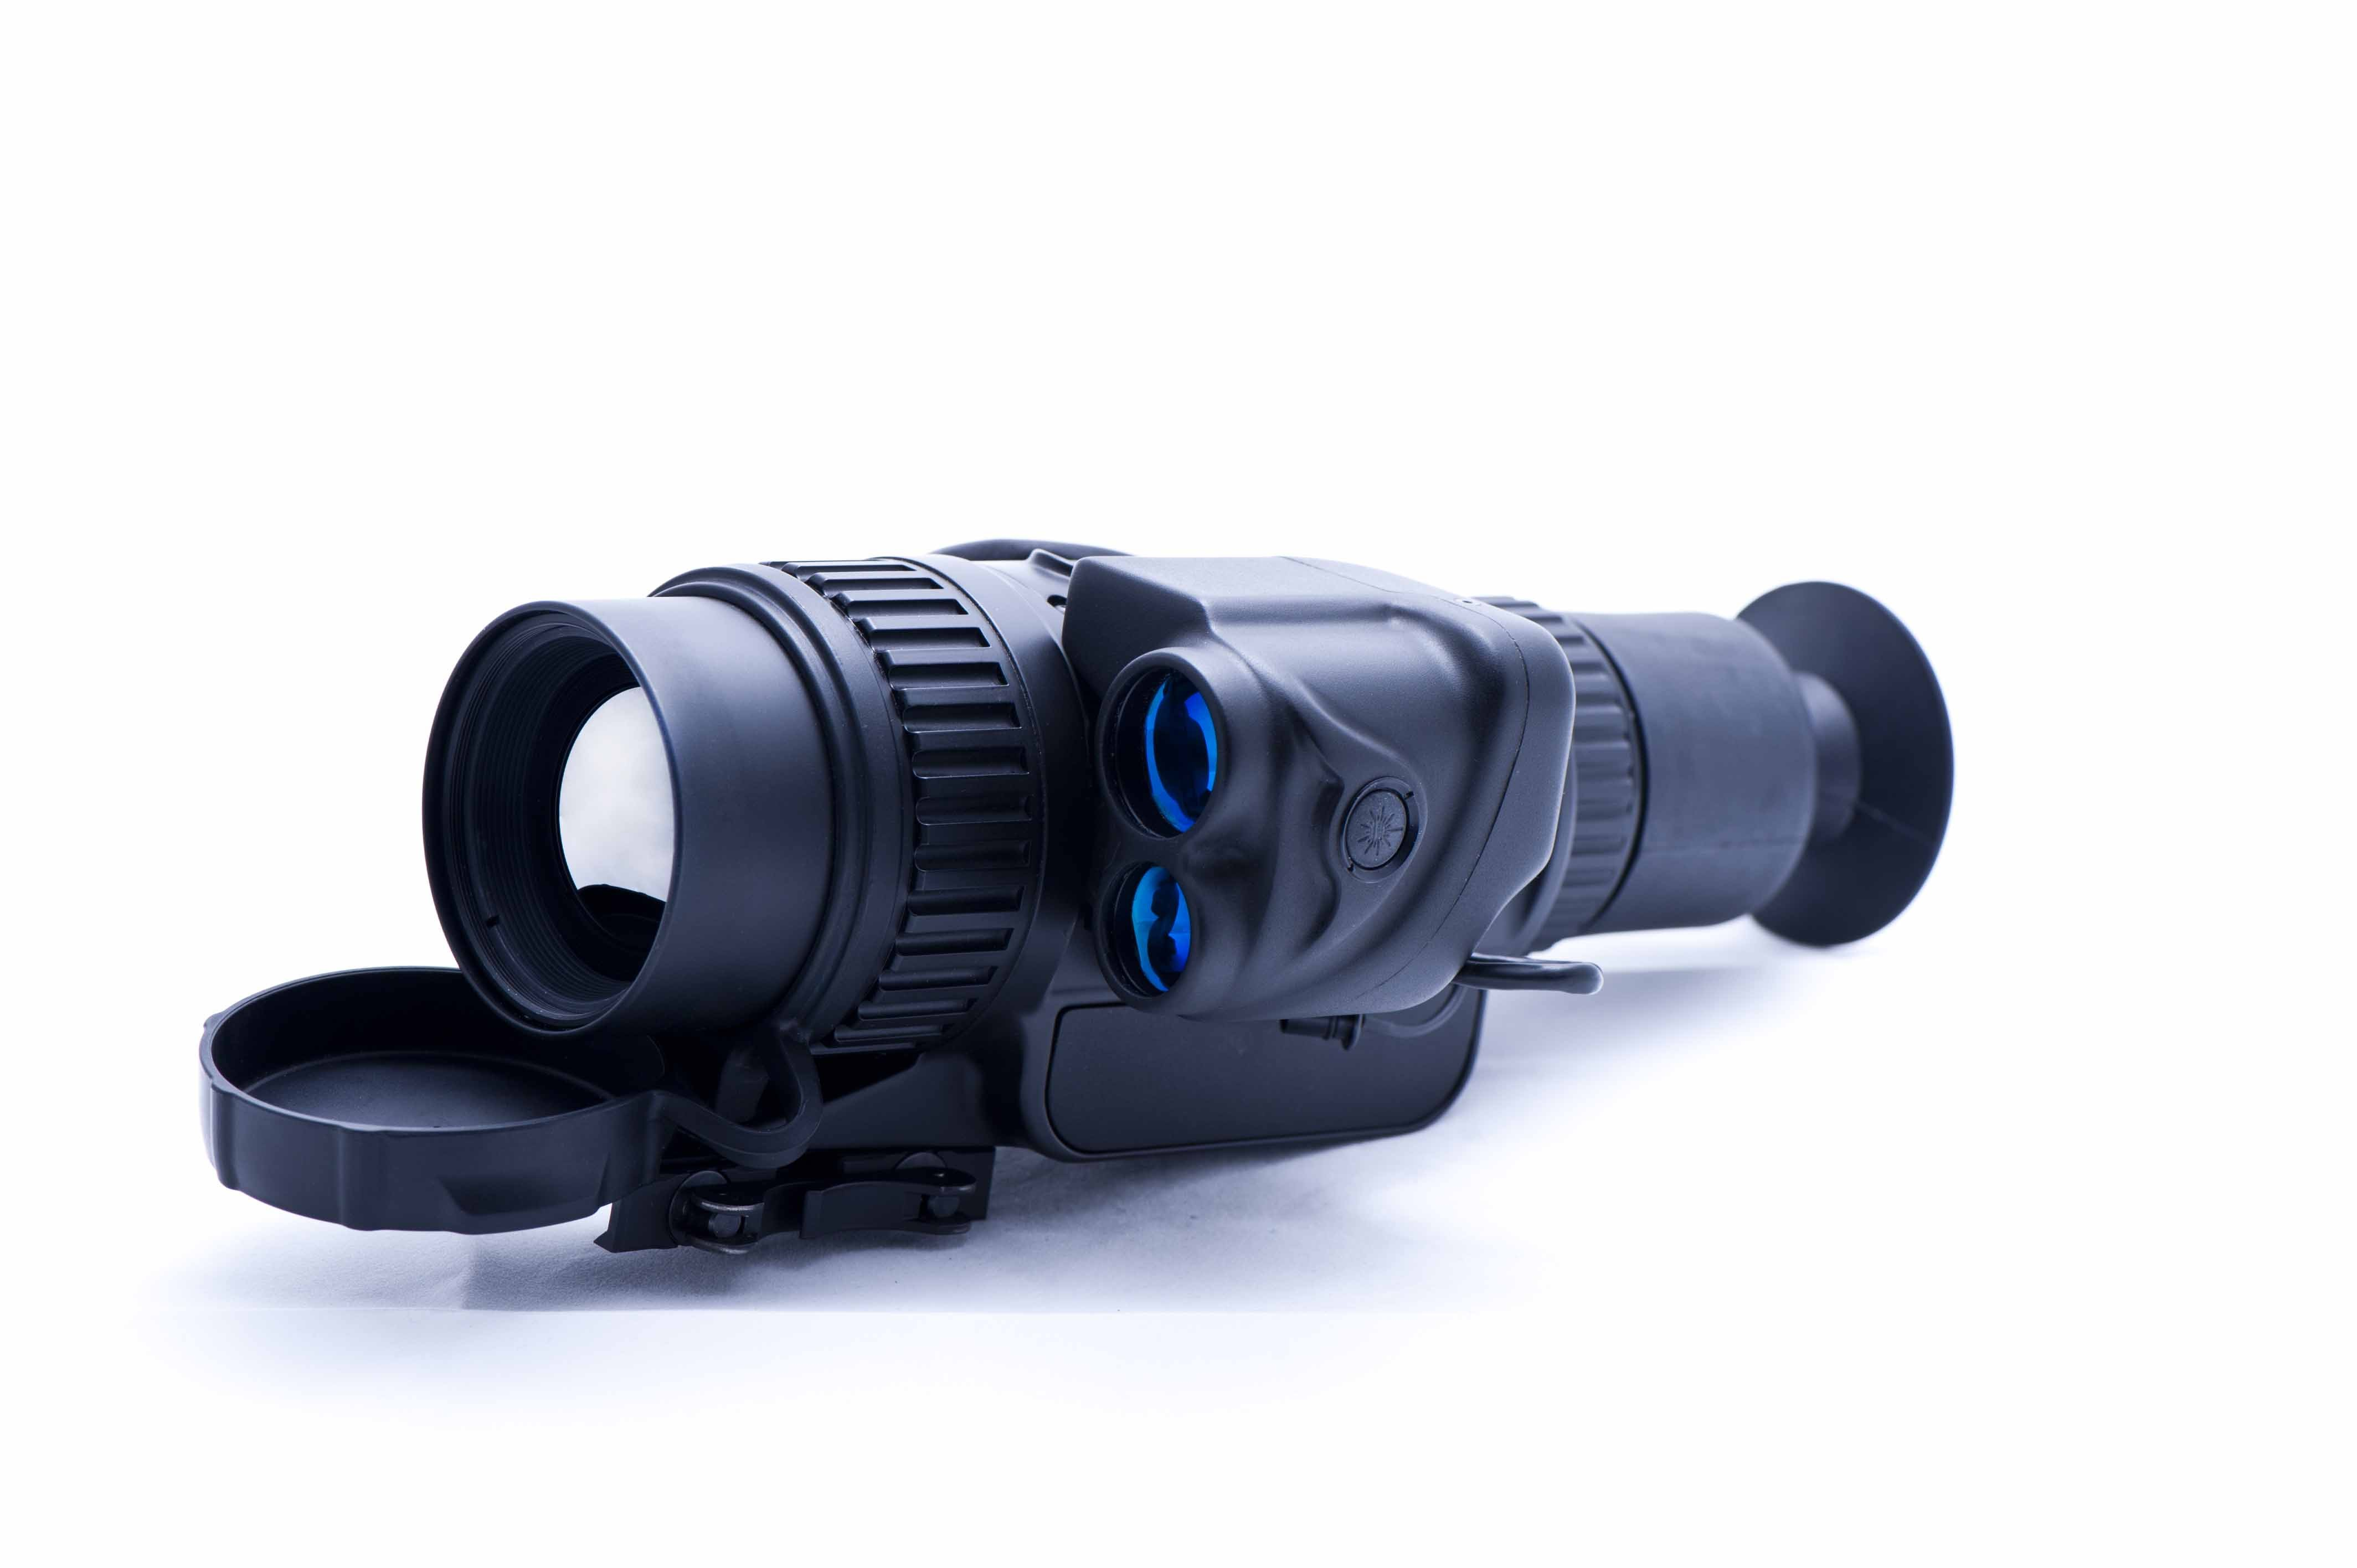 OPTIX IdentifieR 60 + LRF - Thermal Imaging Scope